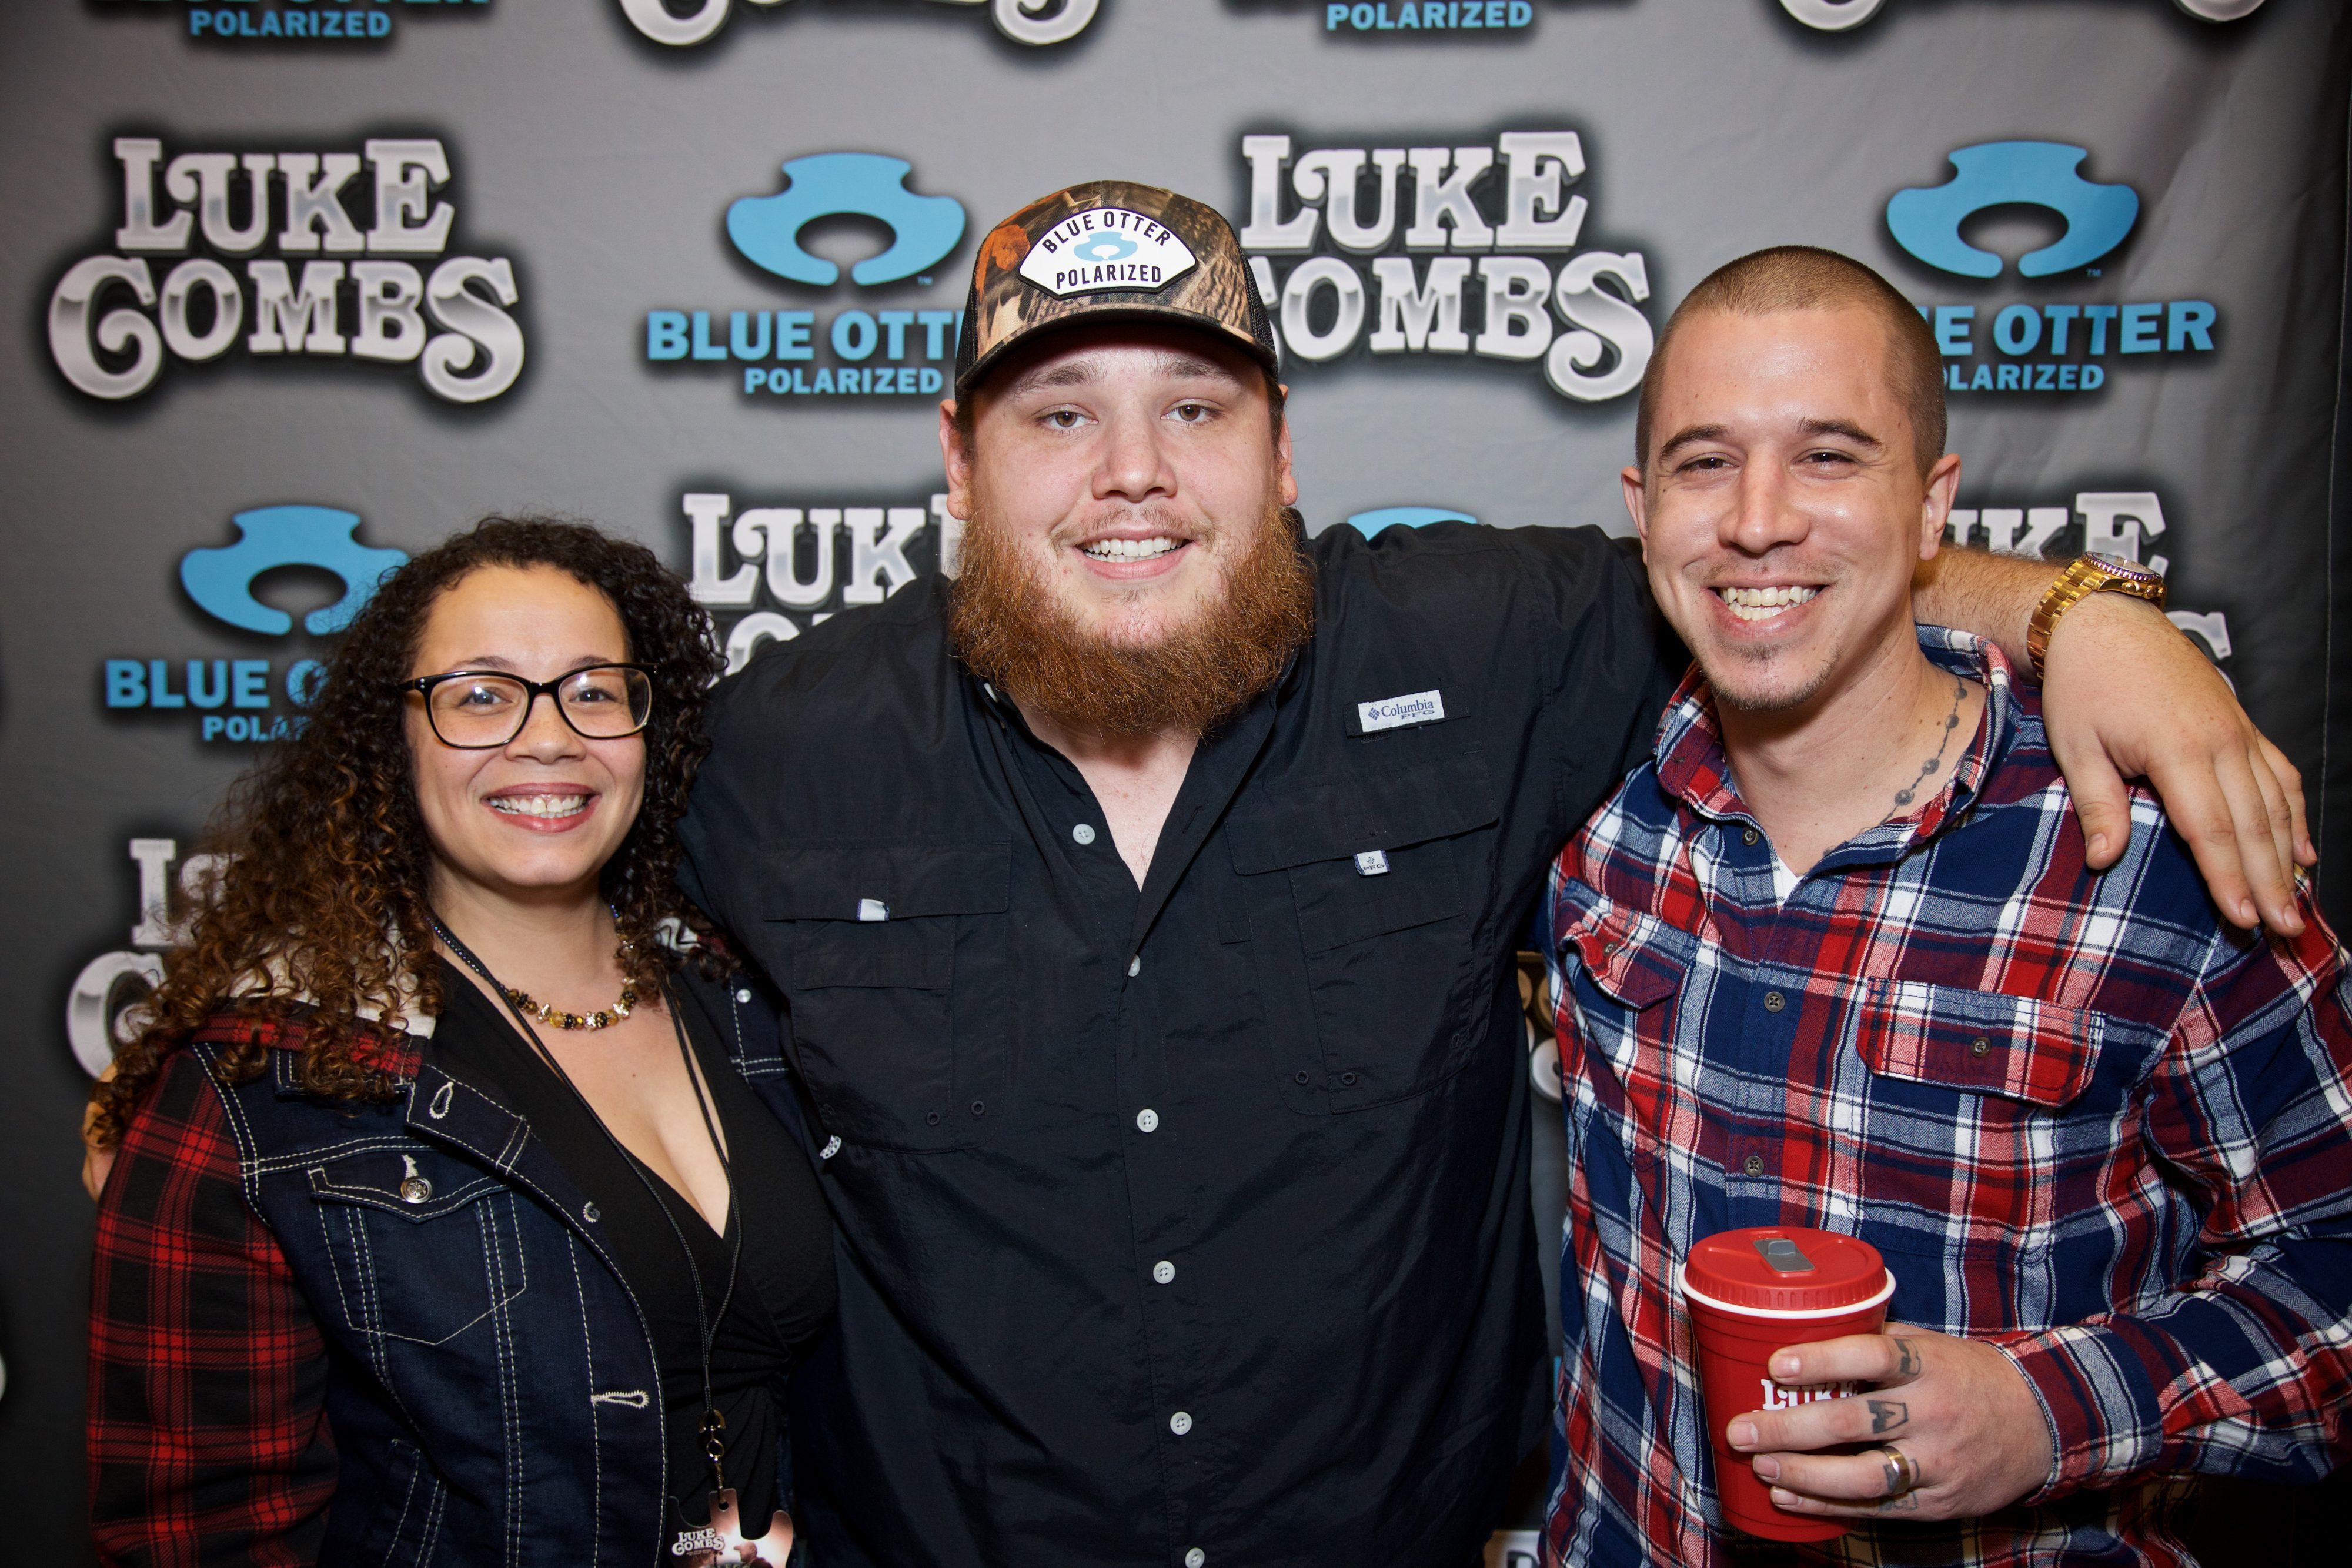 20191211_Luke_Combs_Louisville_0364